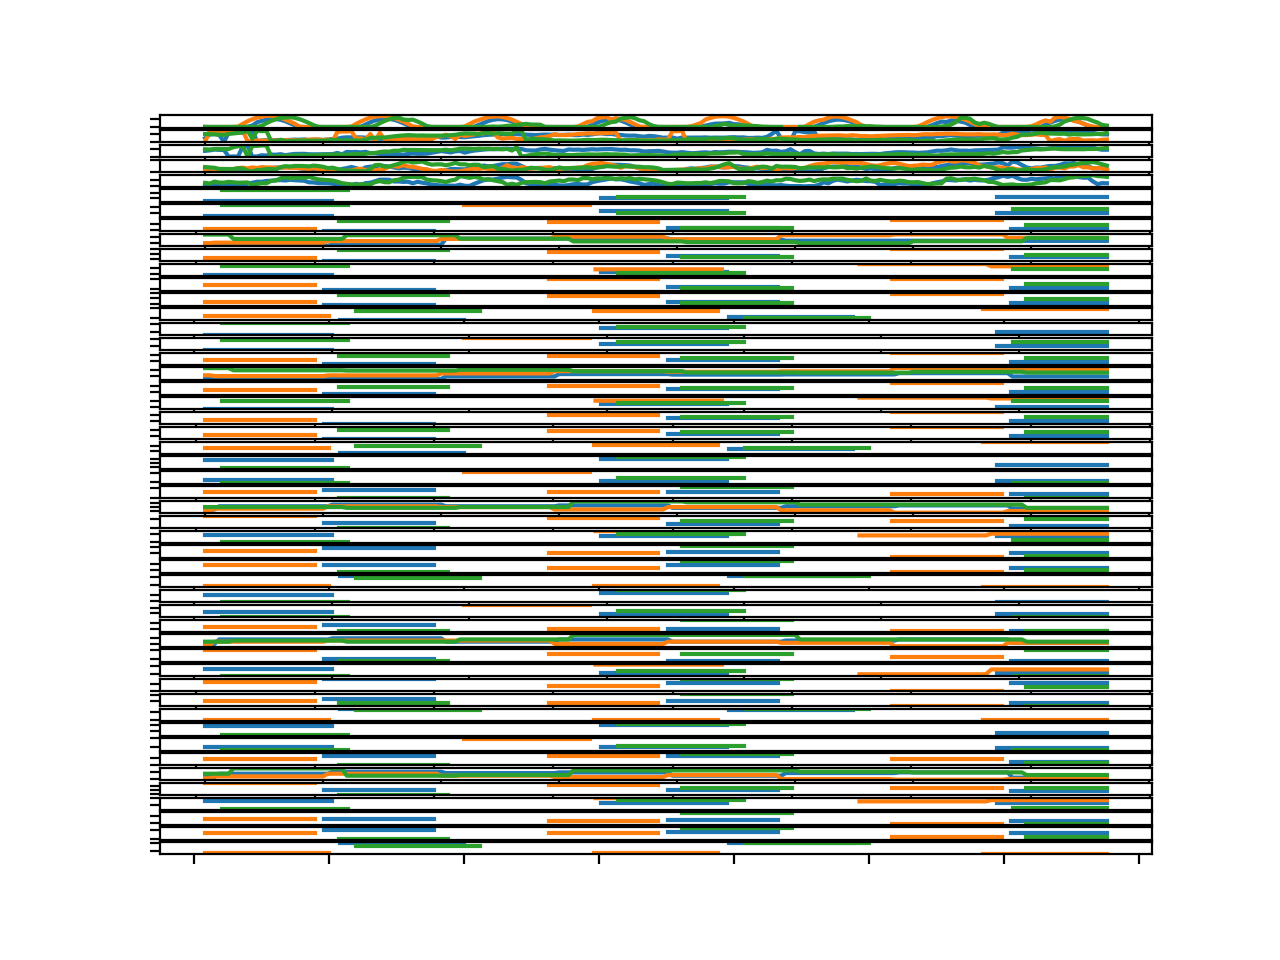 Parallel Time Series Line Plots For All Input Variables for 3 Chunks